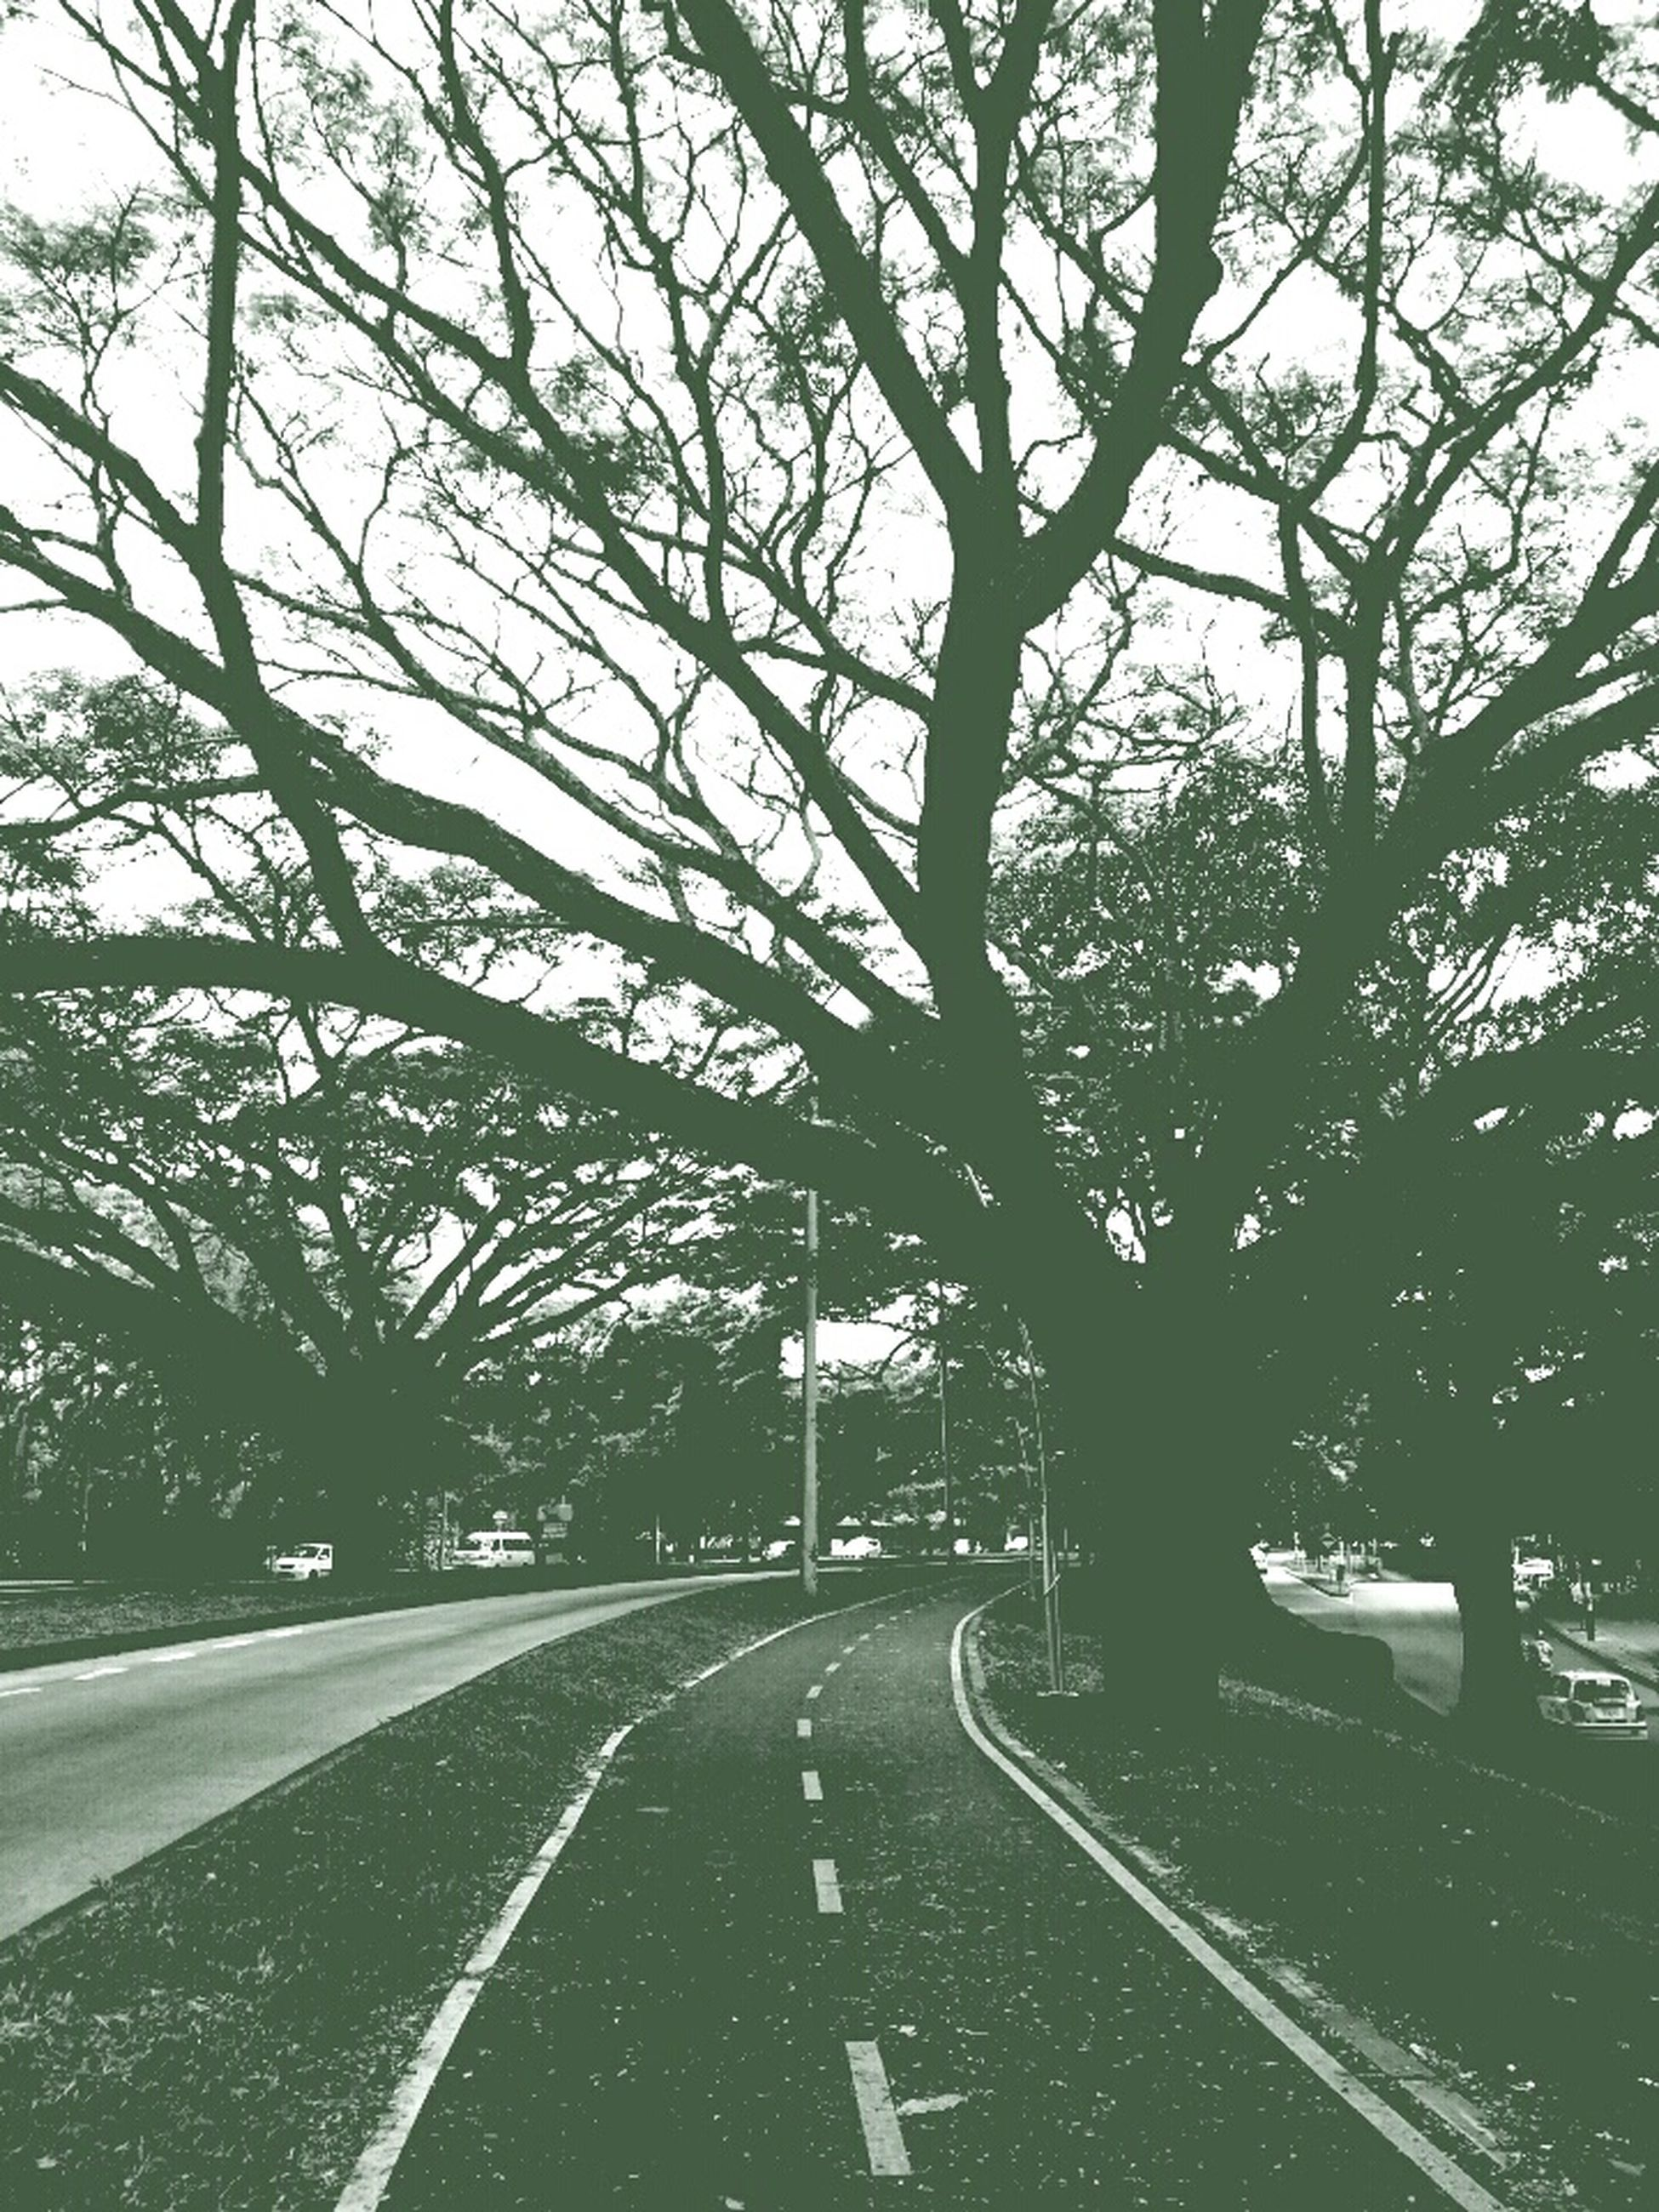 the way forward, road, transportation, tree, road marking, diminishing perspective, vanishing point, empty road, street, tranquility, country road, empty, nature, asphalt, long, no people, tranquil scene, outdoors, treelined, growth